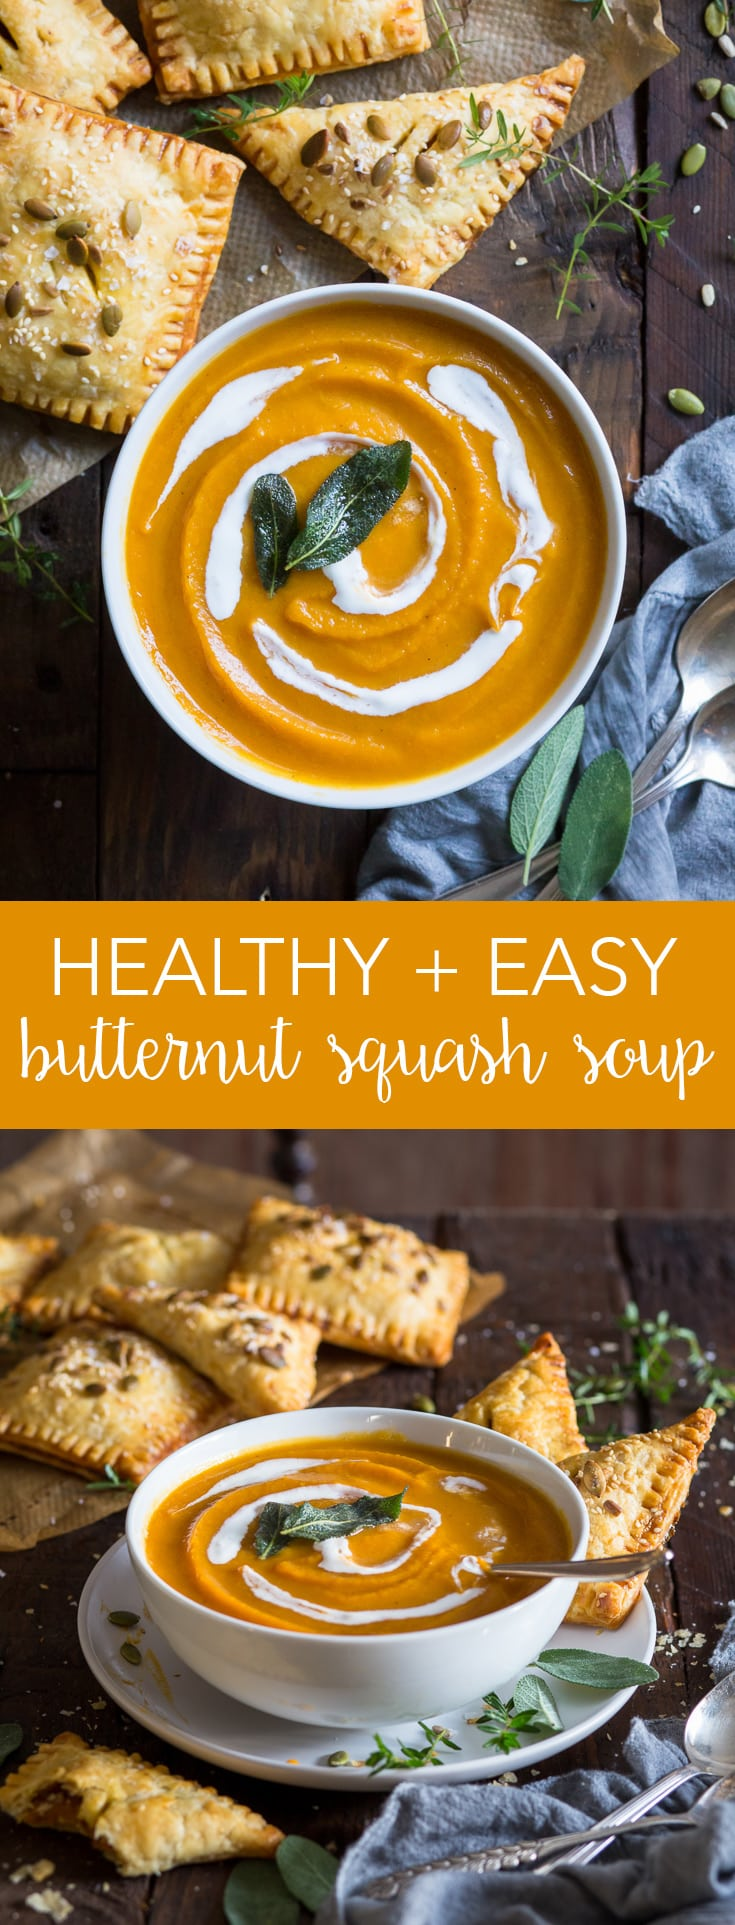 Roasted Butternut Squash Soup (Gluten Free, Dairy Free, Vegan, Paleo) - This healthy (and super creamy) roasted butternut squash soup couldn't be easier to make. With the addition of caramelised onions and a generous pinch of nutmeg, it's the perfect fall comfort food. Plus, it's dairy free, vegan and paleo! Pumpkin recipes. Pumpkin soup. Butternut squash recipes. Easy soup recipe. Healthy lunch ideas. Healthy soup. Vegan pumpkin soup. Thanksgiving recipes. #pumpkin #healthyrecipes